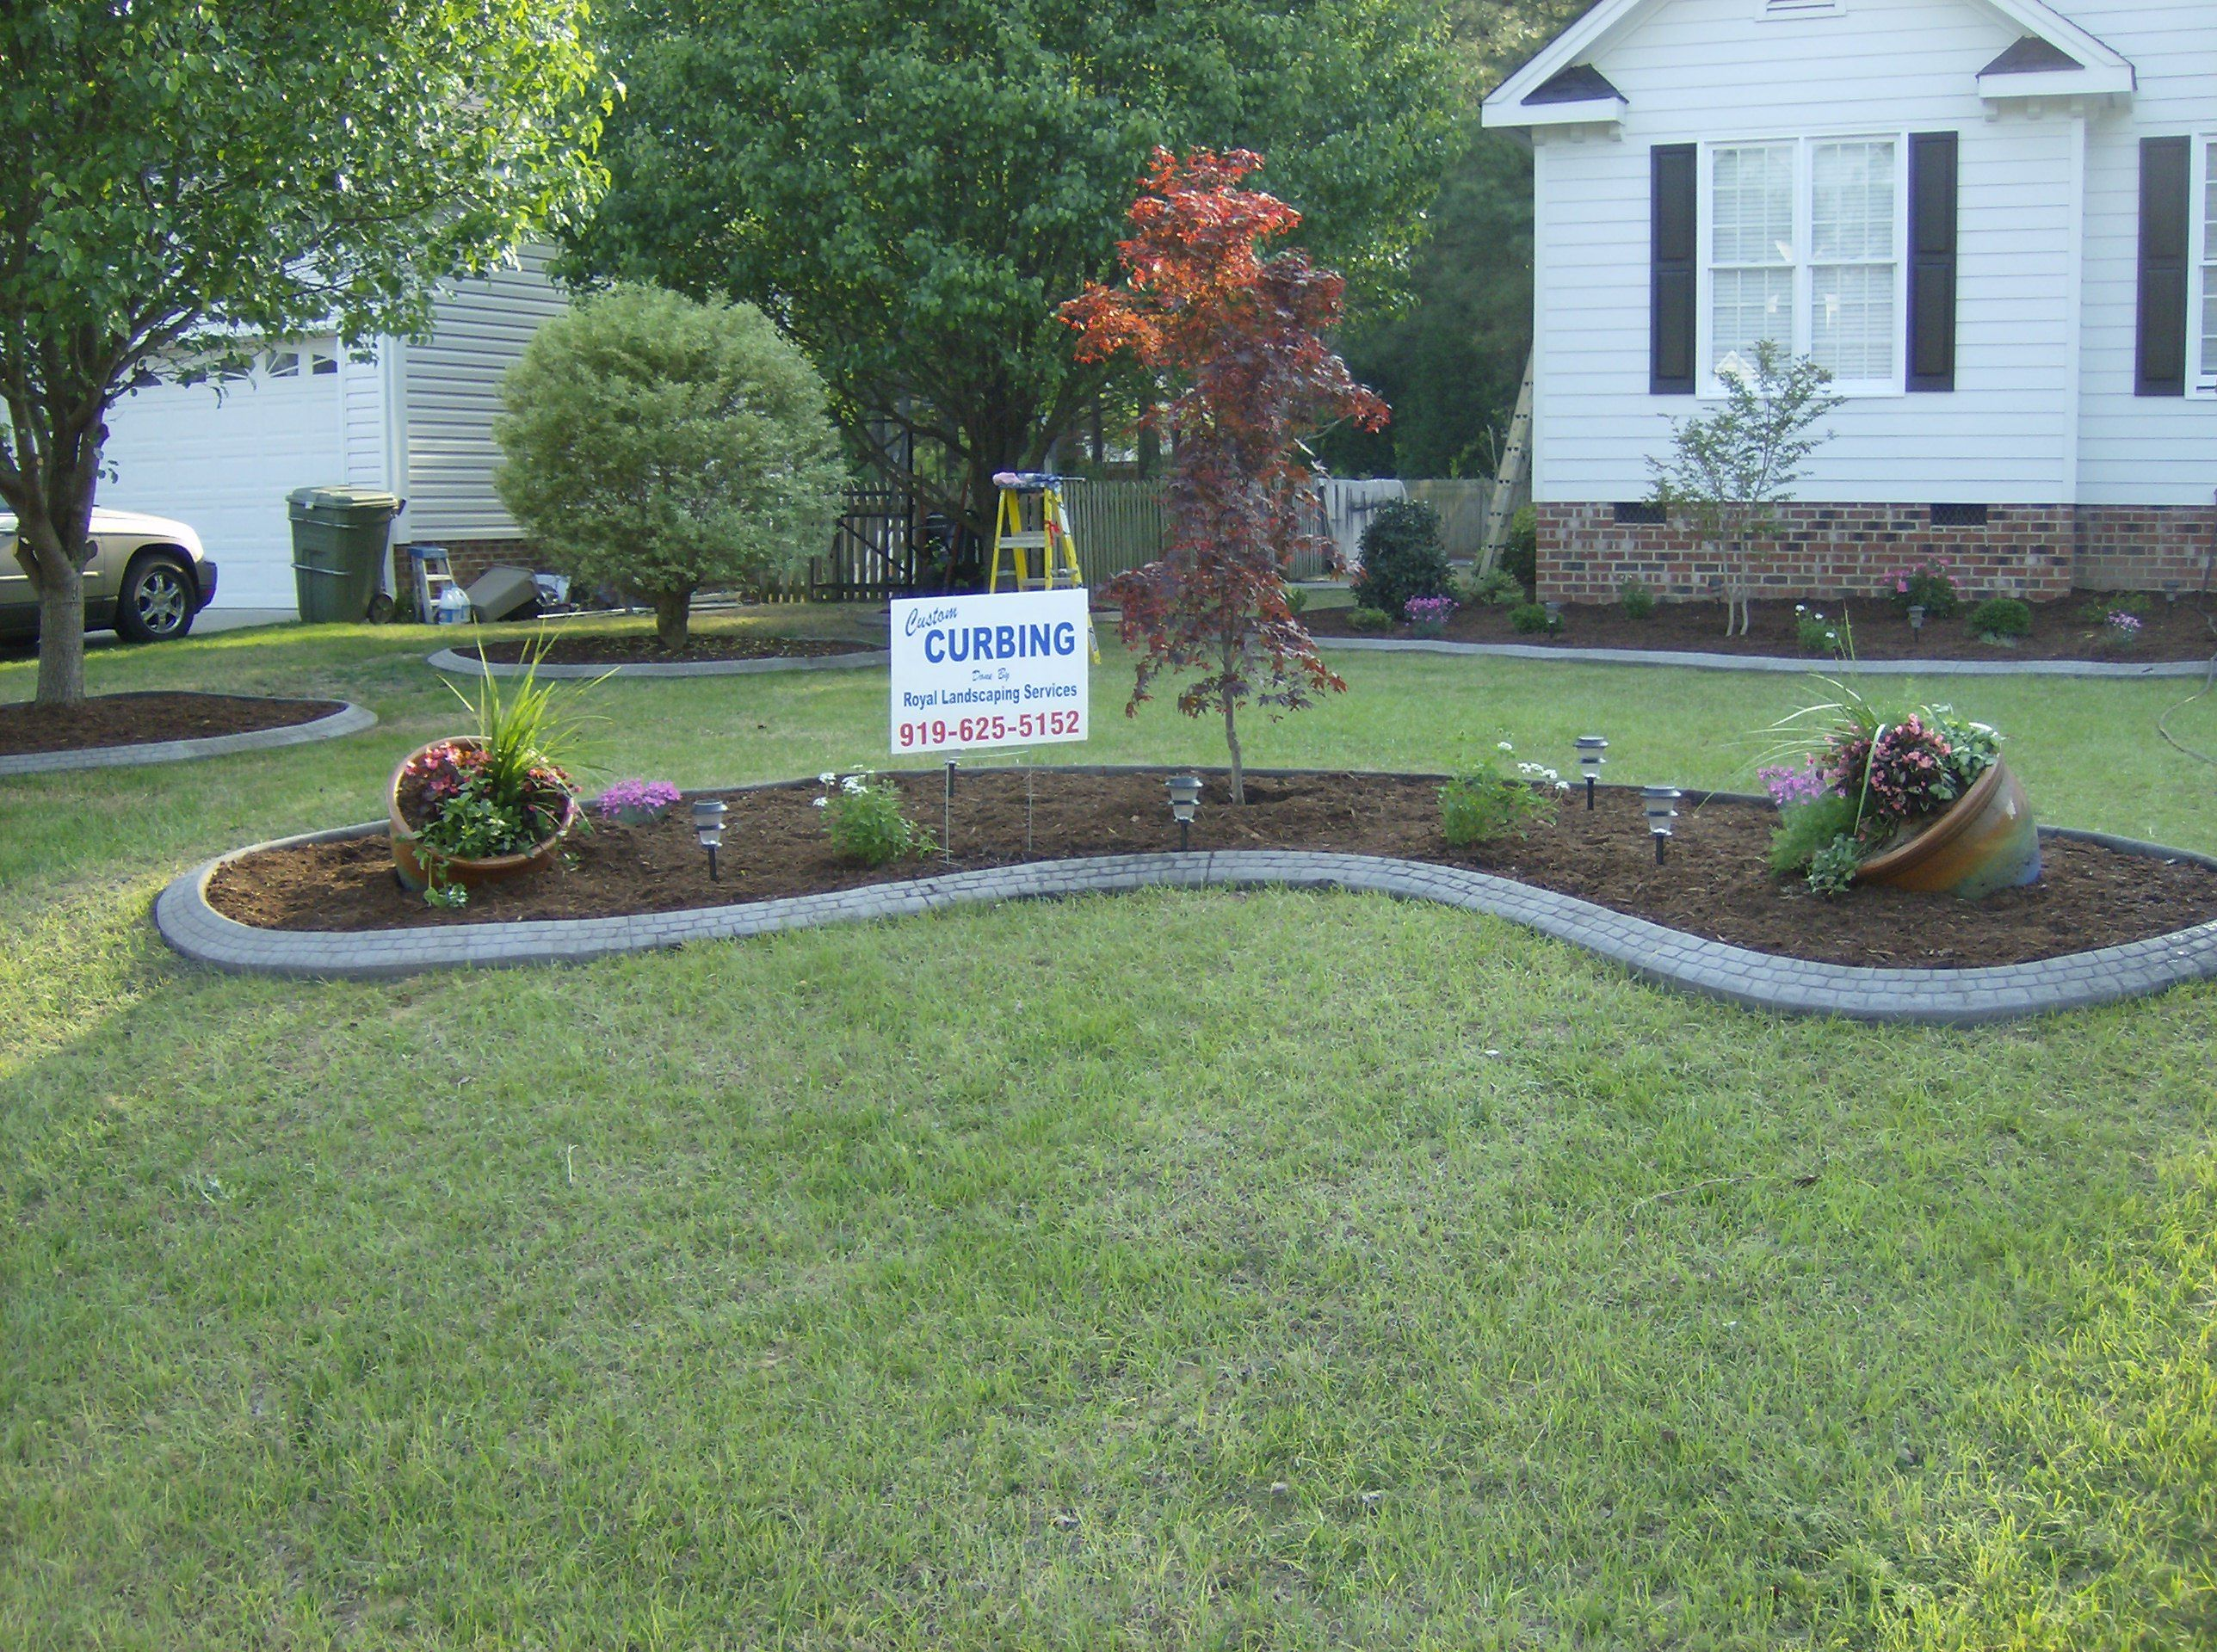 Flowerbed Borders Royal Landscaping Services And Curbing